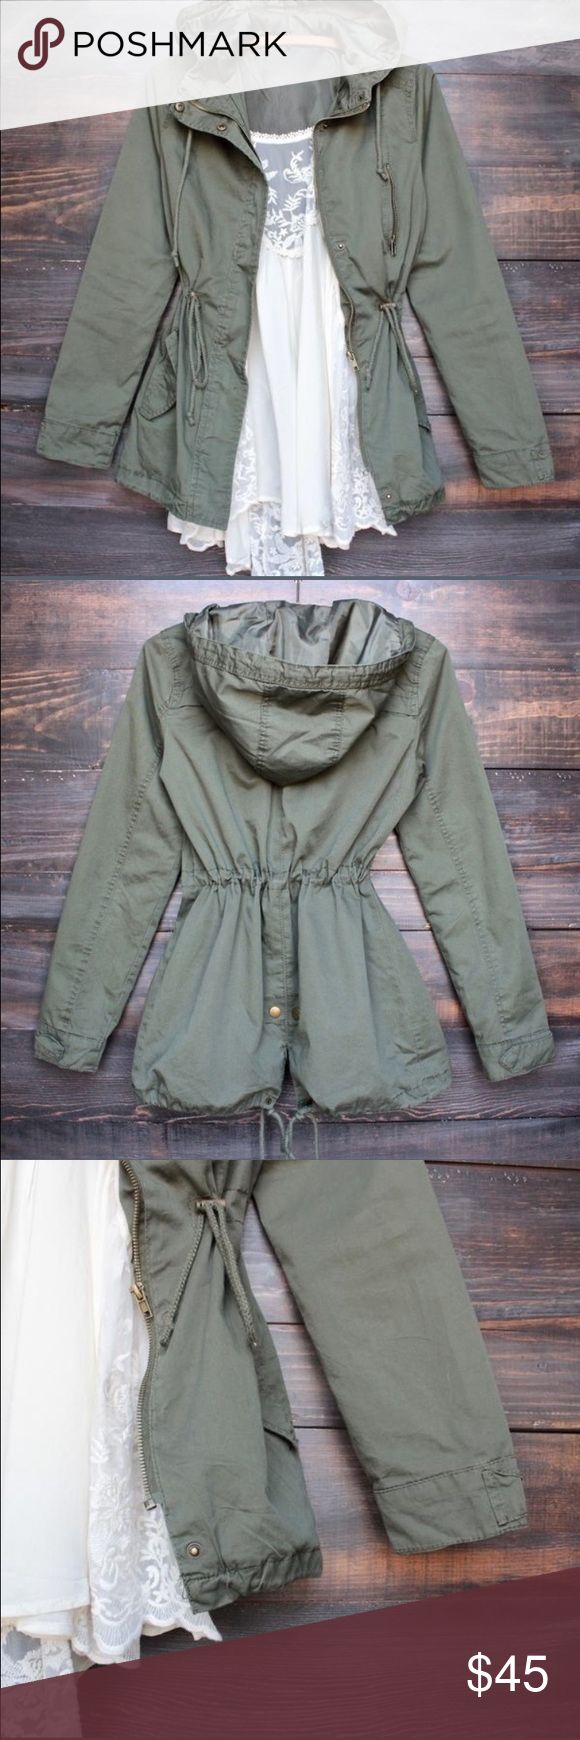 🆕Women's Hooded Green Utility Jacket Very cute and versatile this green women's utility jacket features a hood, pockets on both sides and drawstrings at waist and bottom. Zip up and fully lined. Size small and medium available. Brand new direct from distributor. Price firm unless bundled. RIIBS Jackets & Coats Utility Jackets